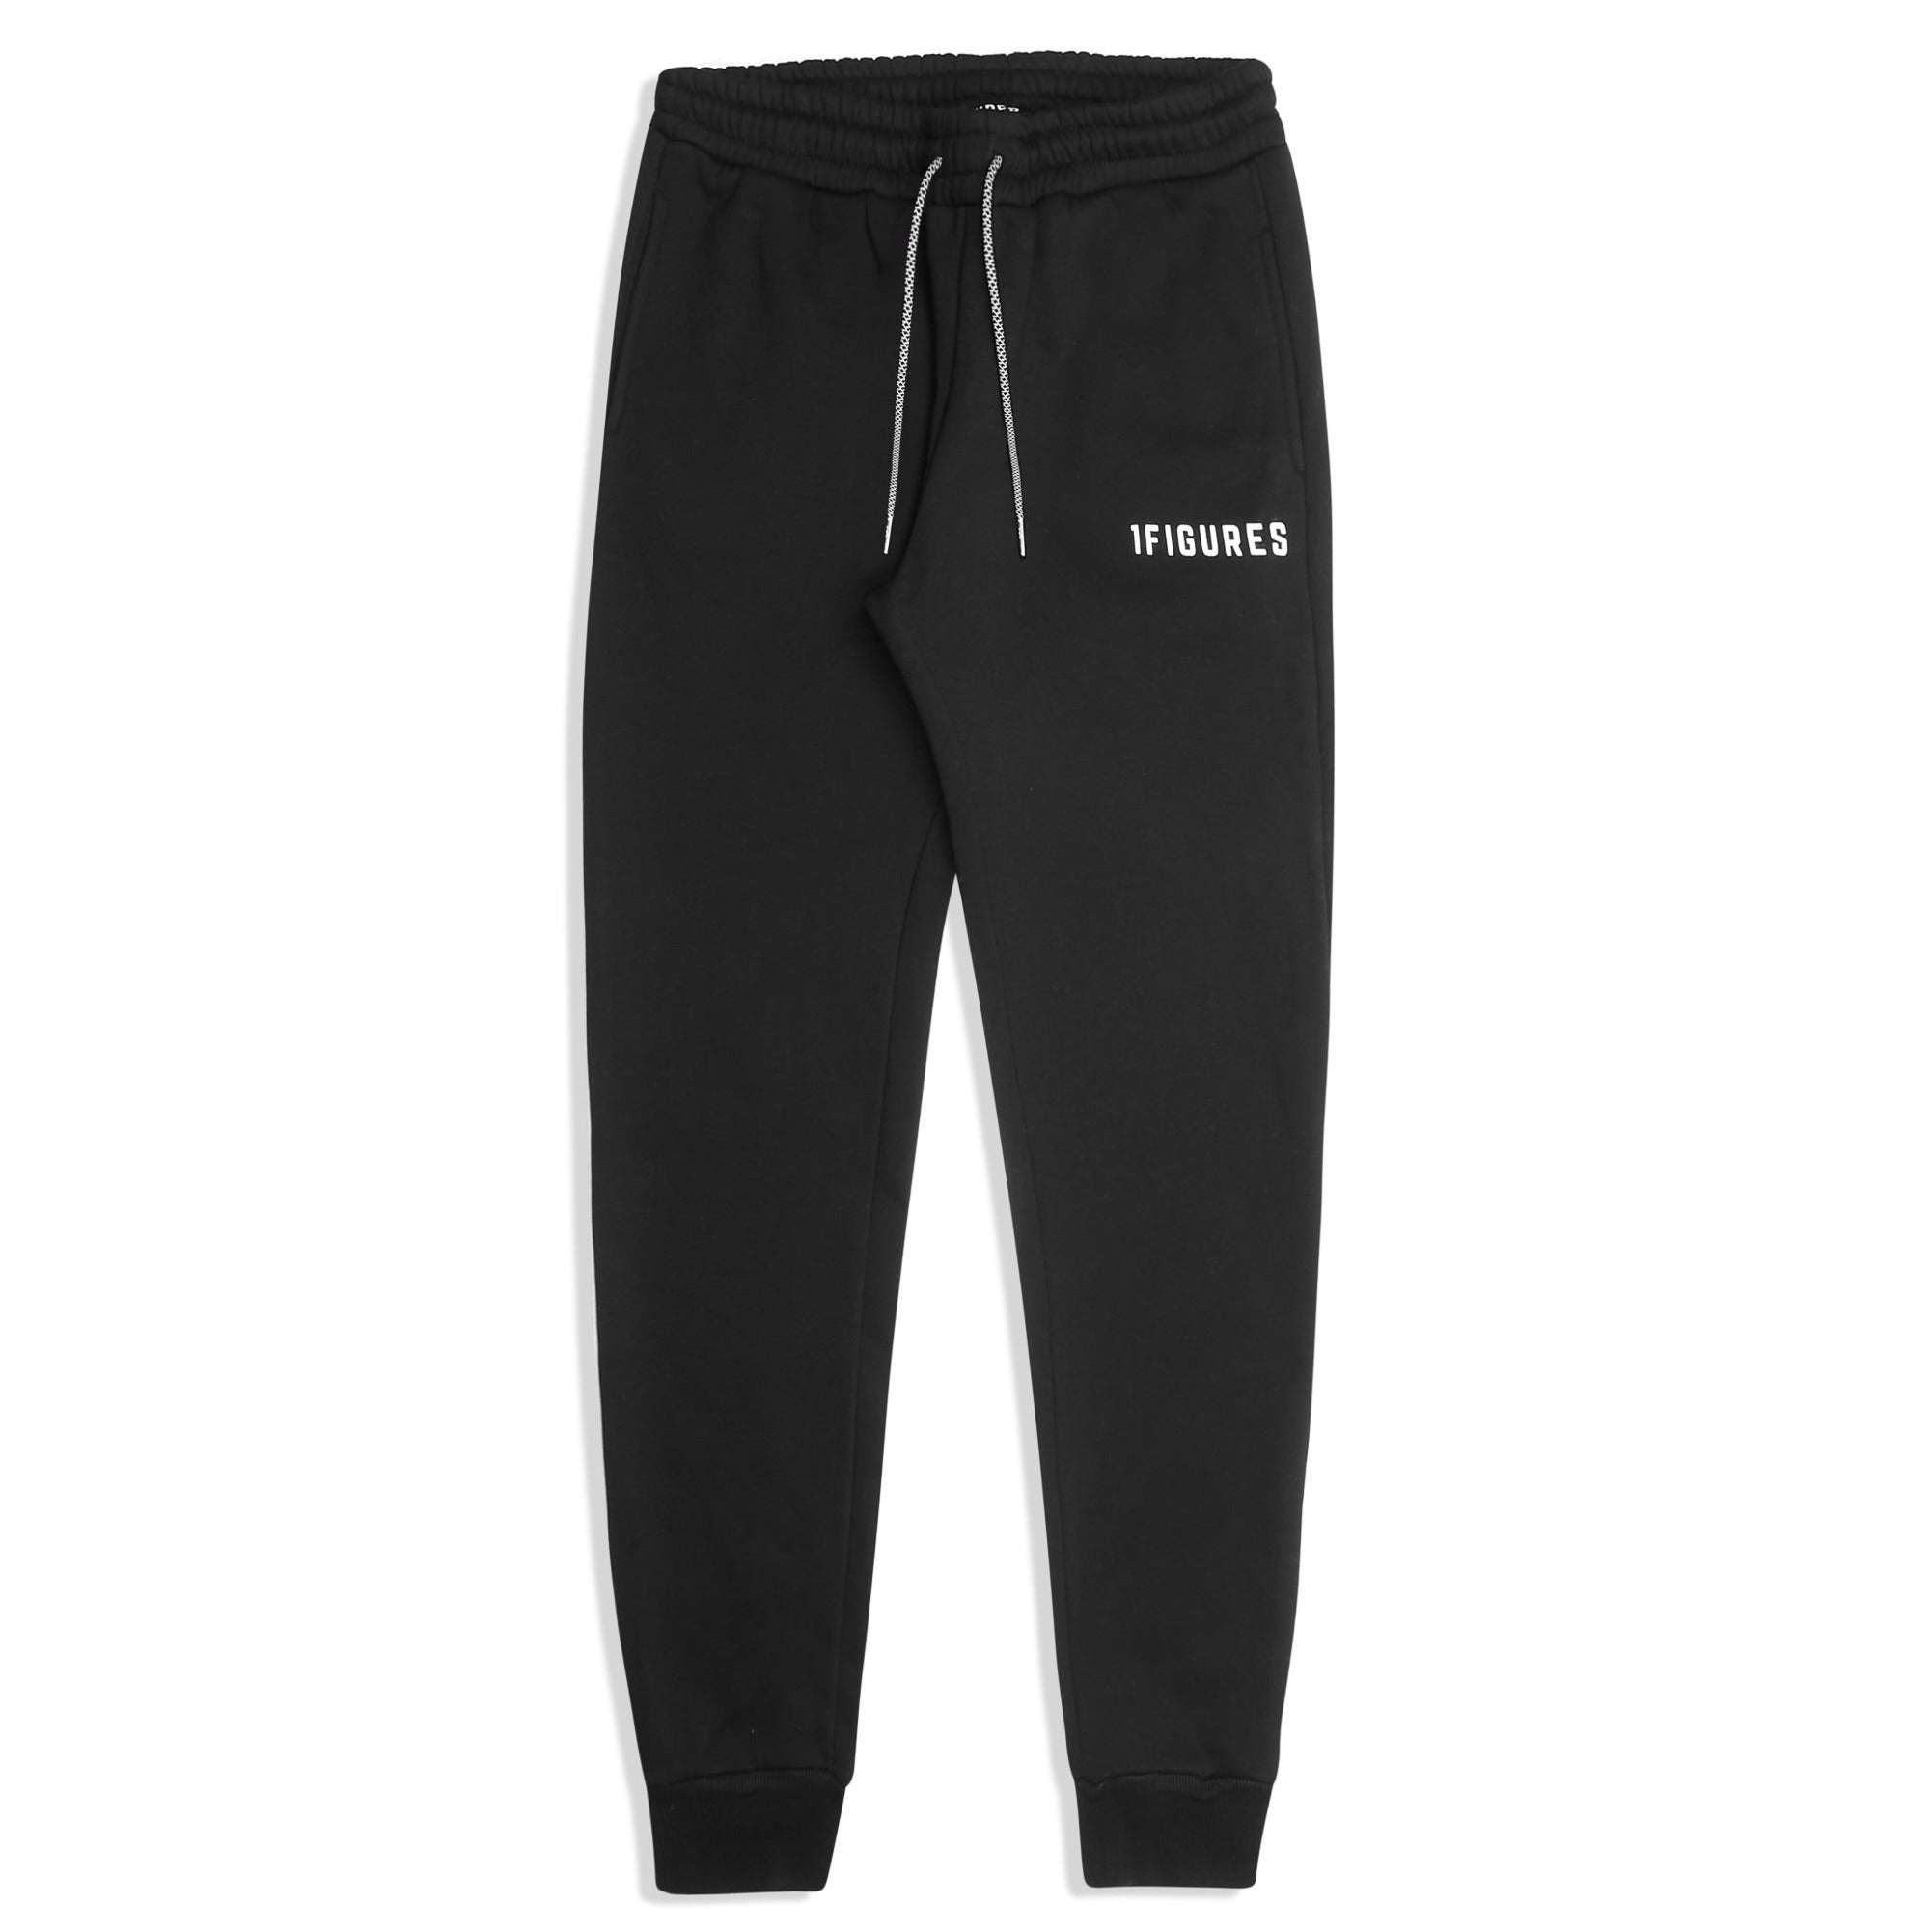 1FIGURES - Black OG Sweatpants